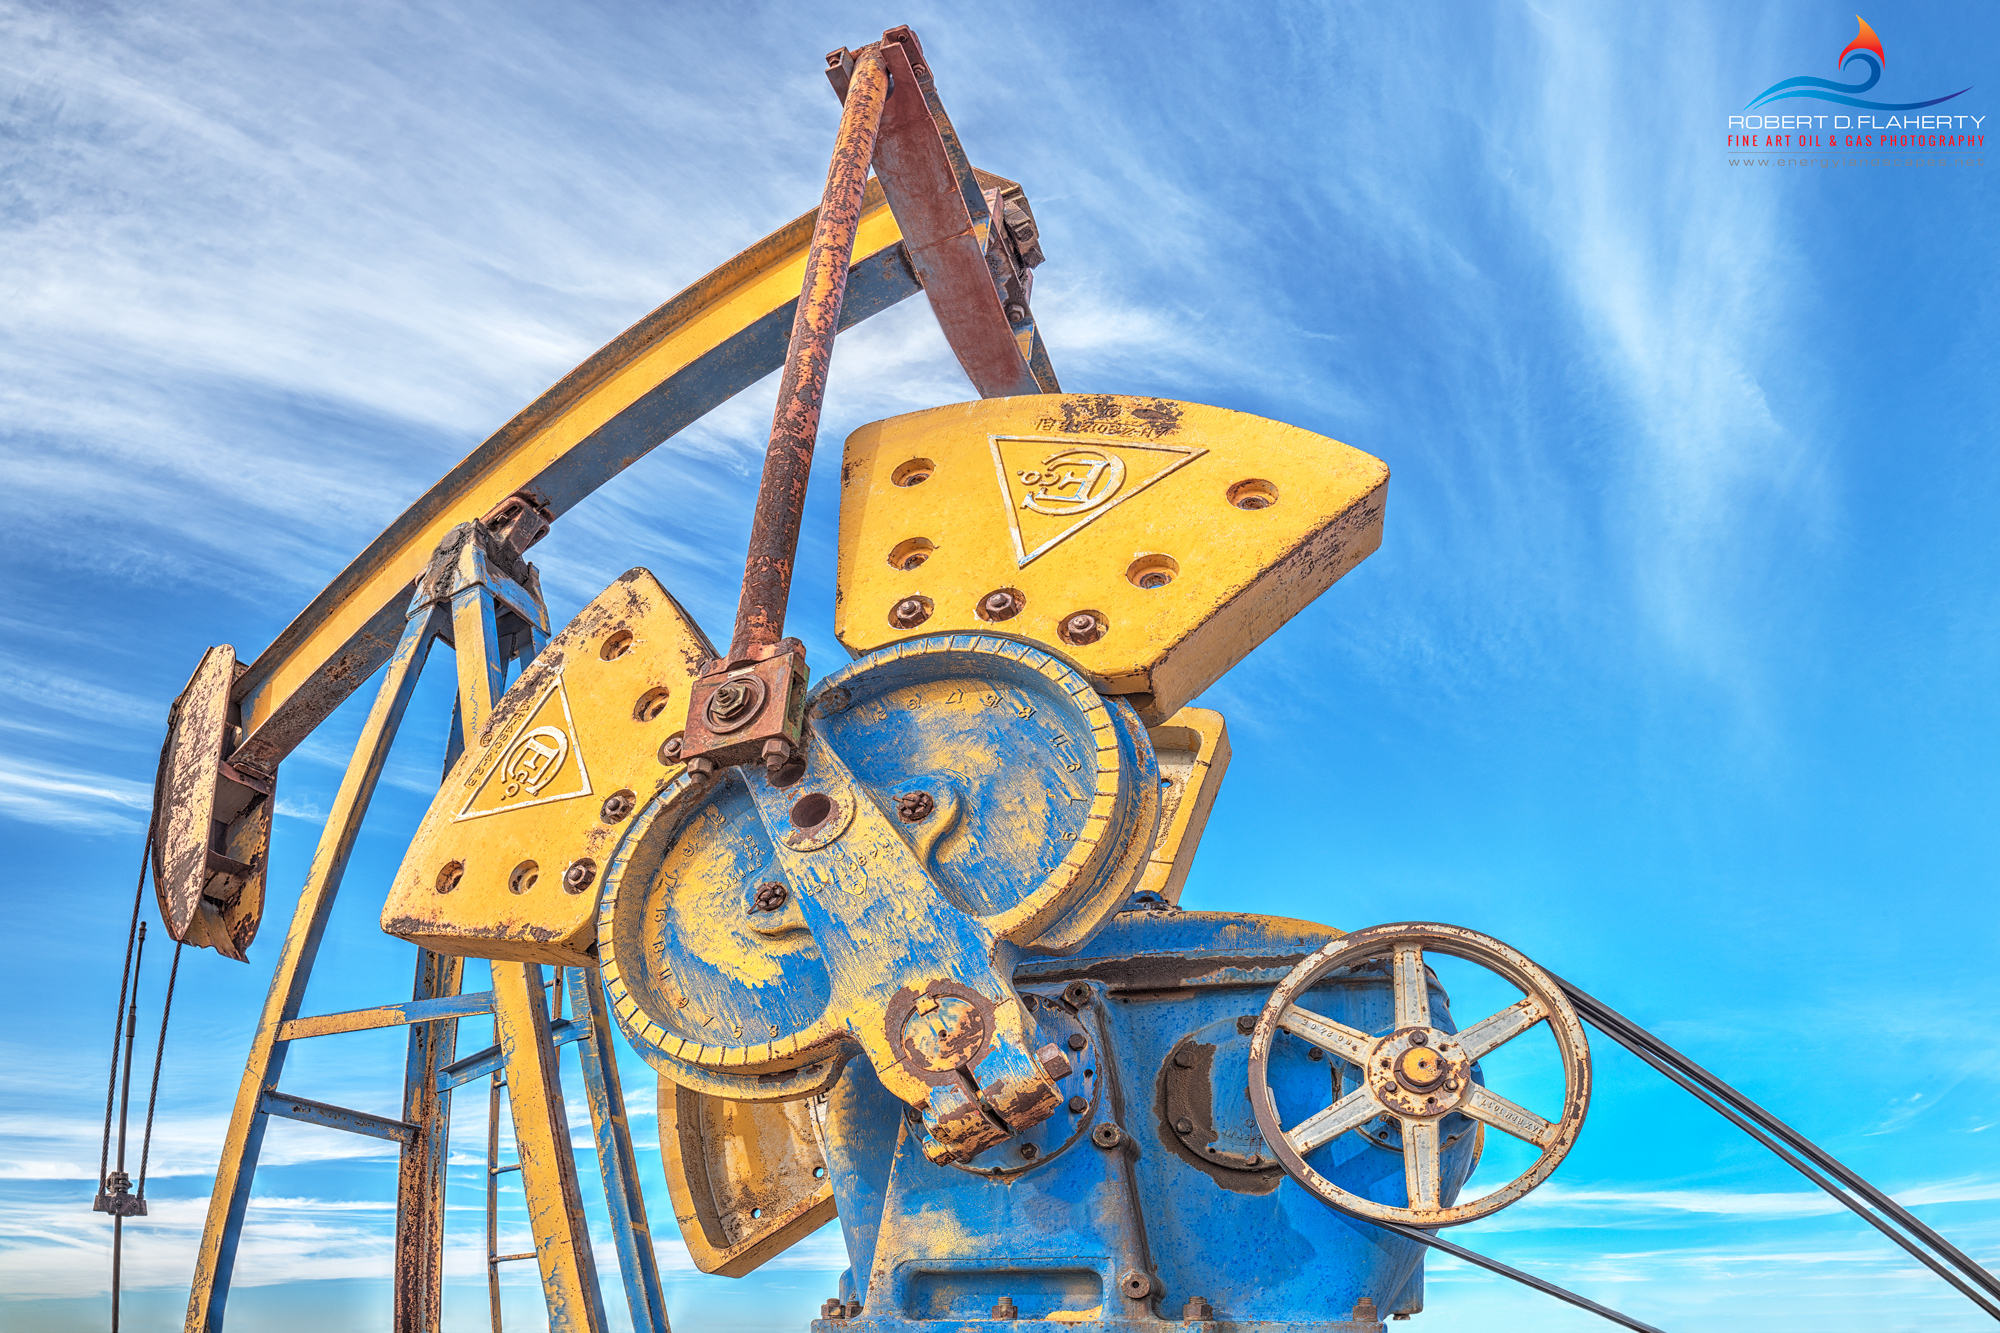 pumpjack, pump jack, lea County New Mexico, Square Lake, stripper well ,fine art photography of oilfield production assets, photo